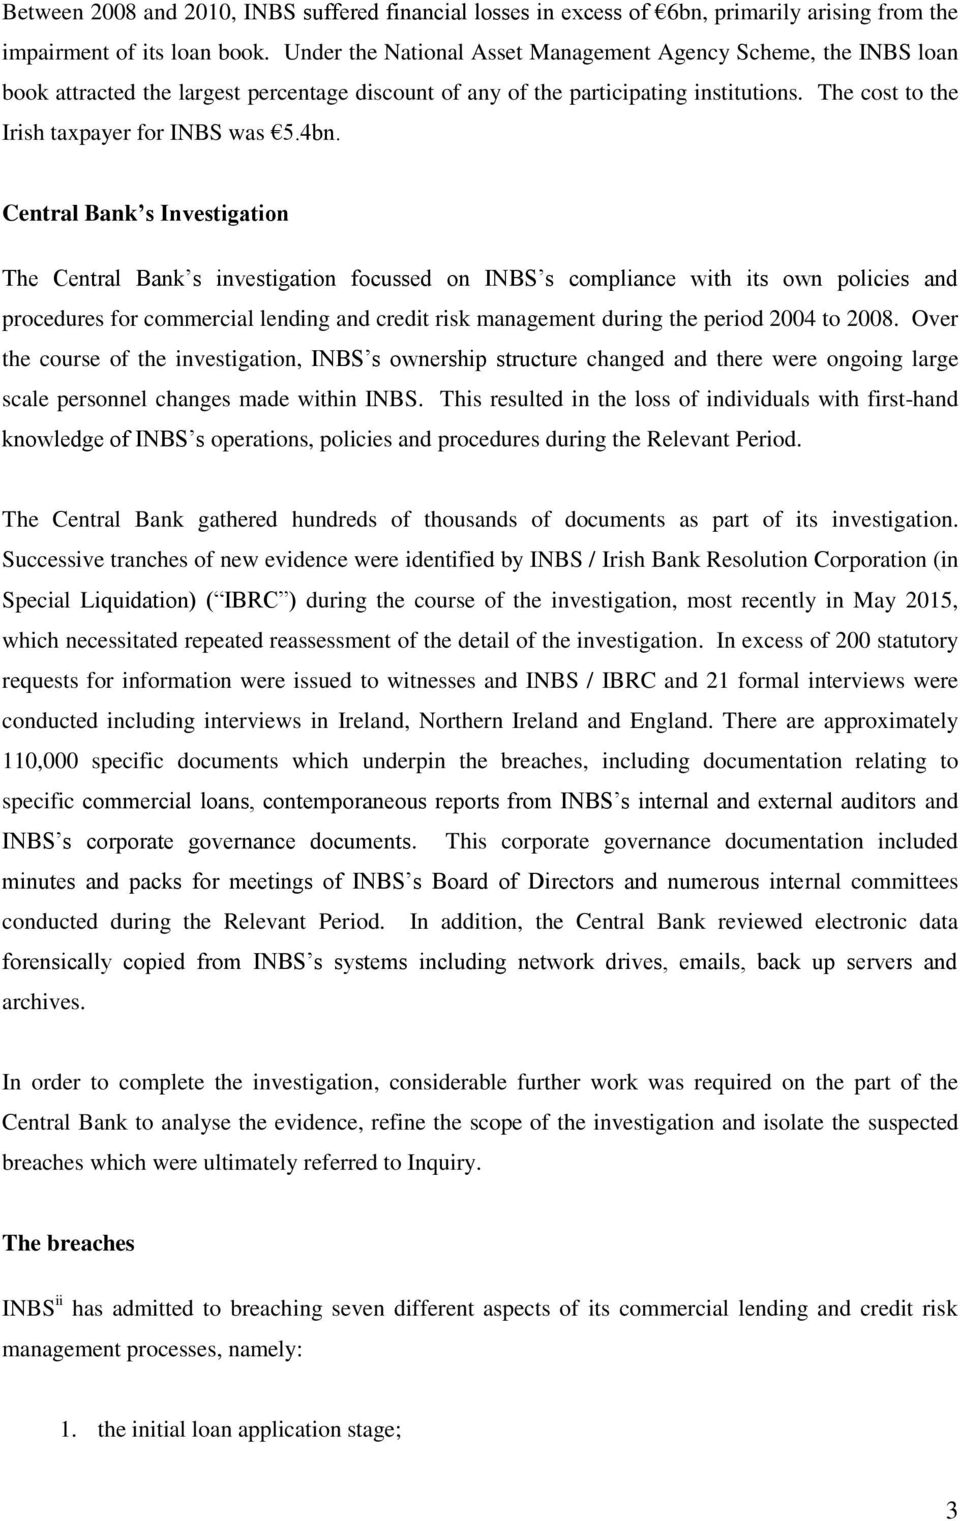 4bn. Central Bank s Investigation The Central Bank s investigation focussed on INBS s compliance with its own policies and procedures for commercial lending and credit risk management during the